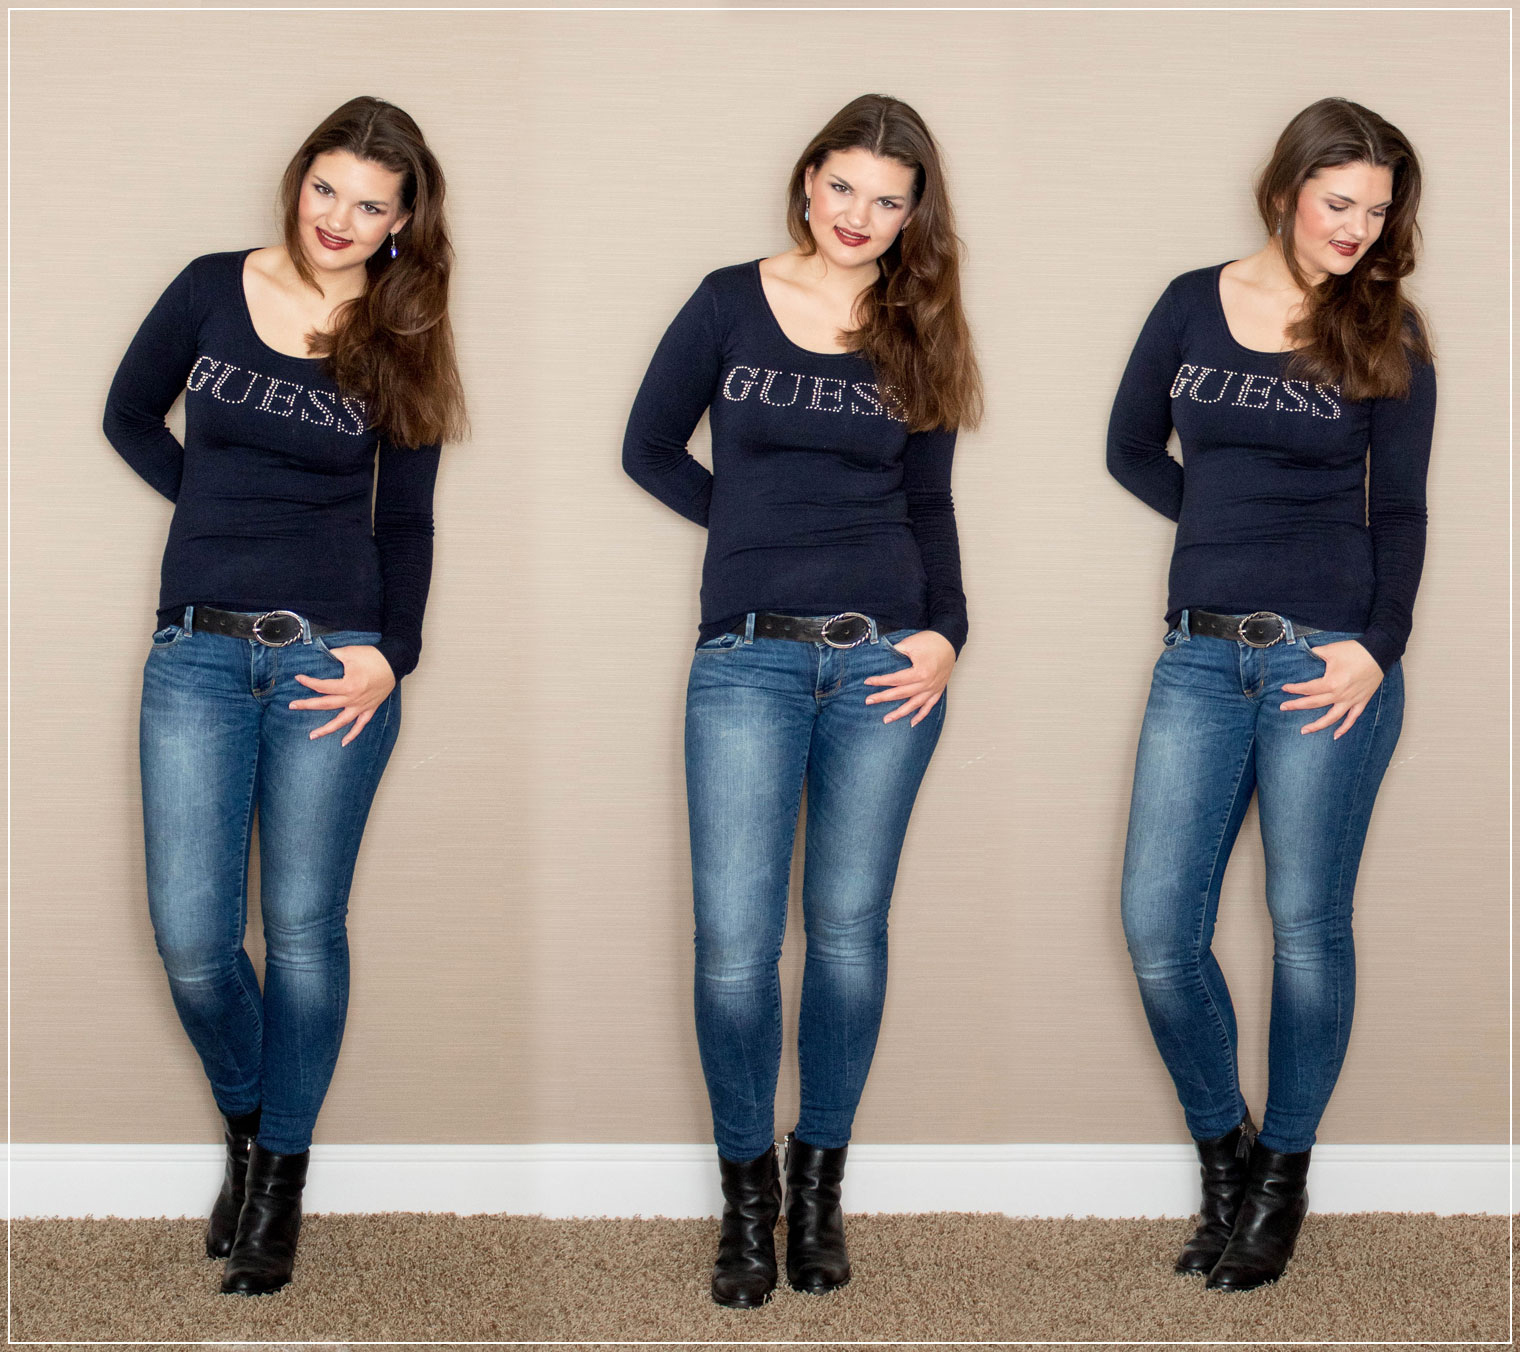 Alltagsoutfit, Dailylook, Herbstoutfit, Herbstmode, Fashionblog, Modebloggerin, Ruhrgebiet, Monatsreview, Modeblog